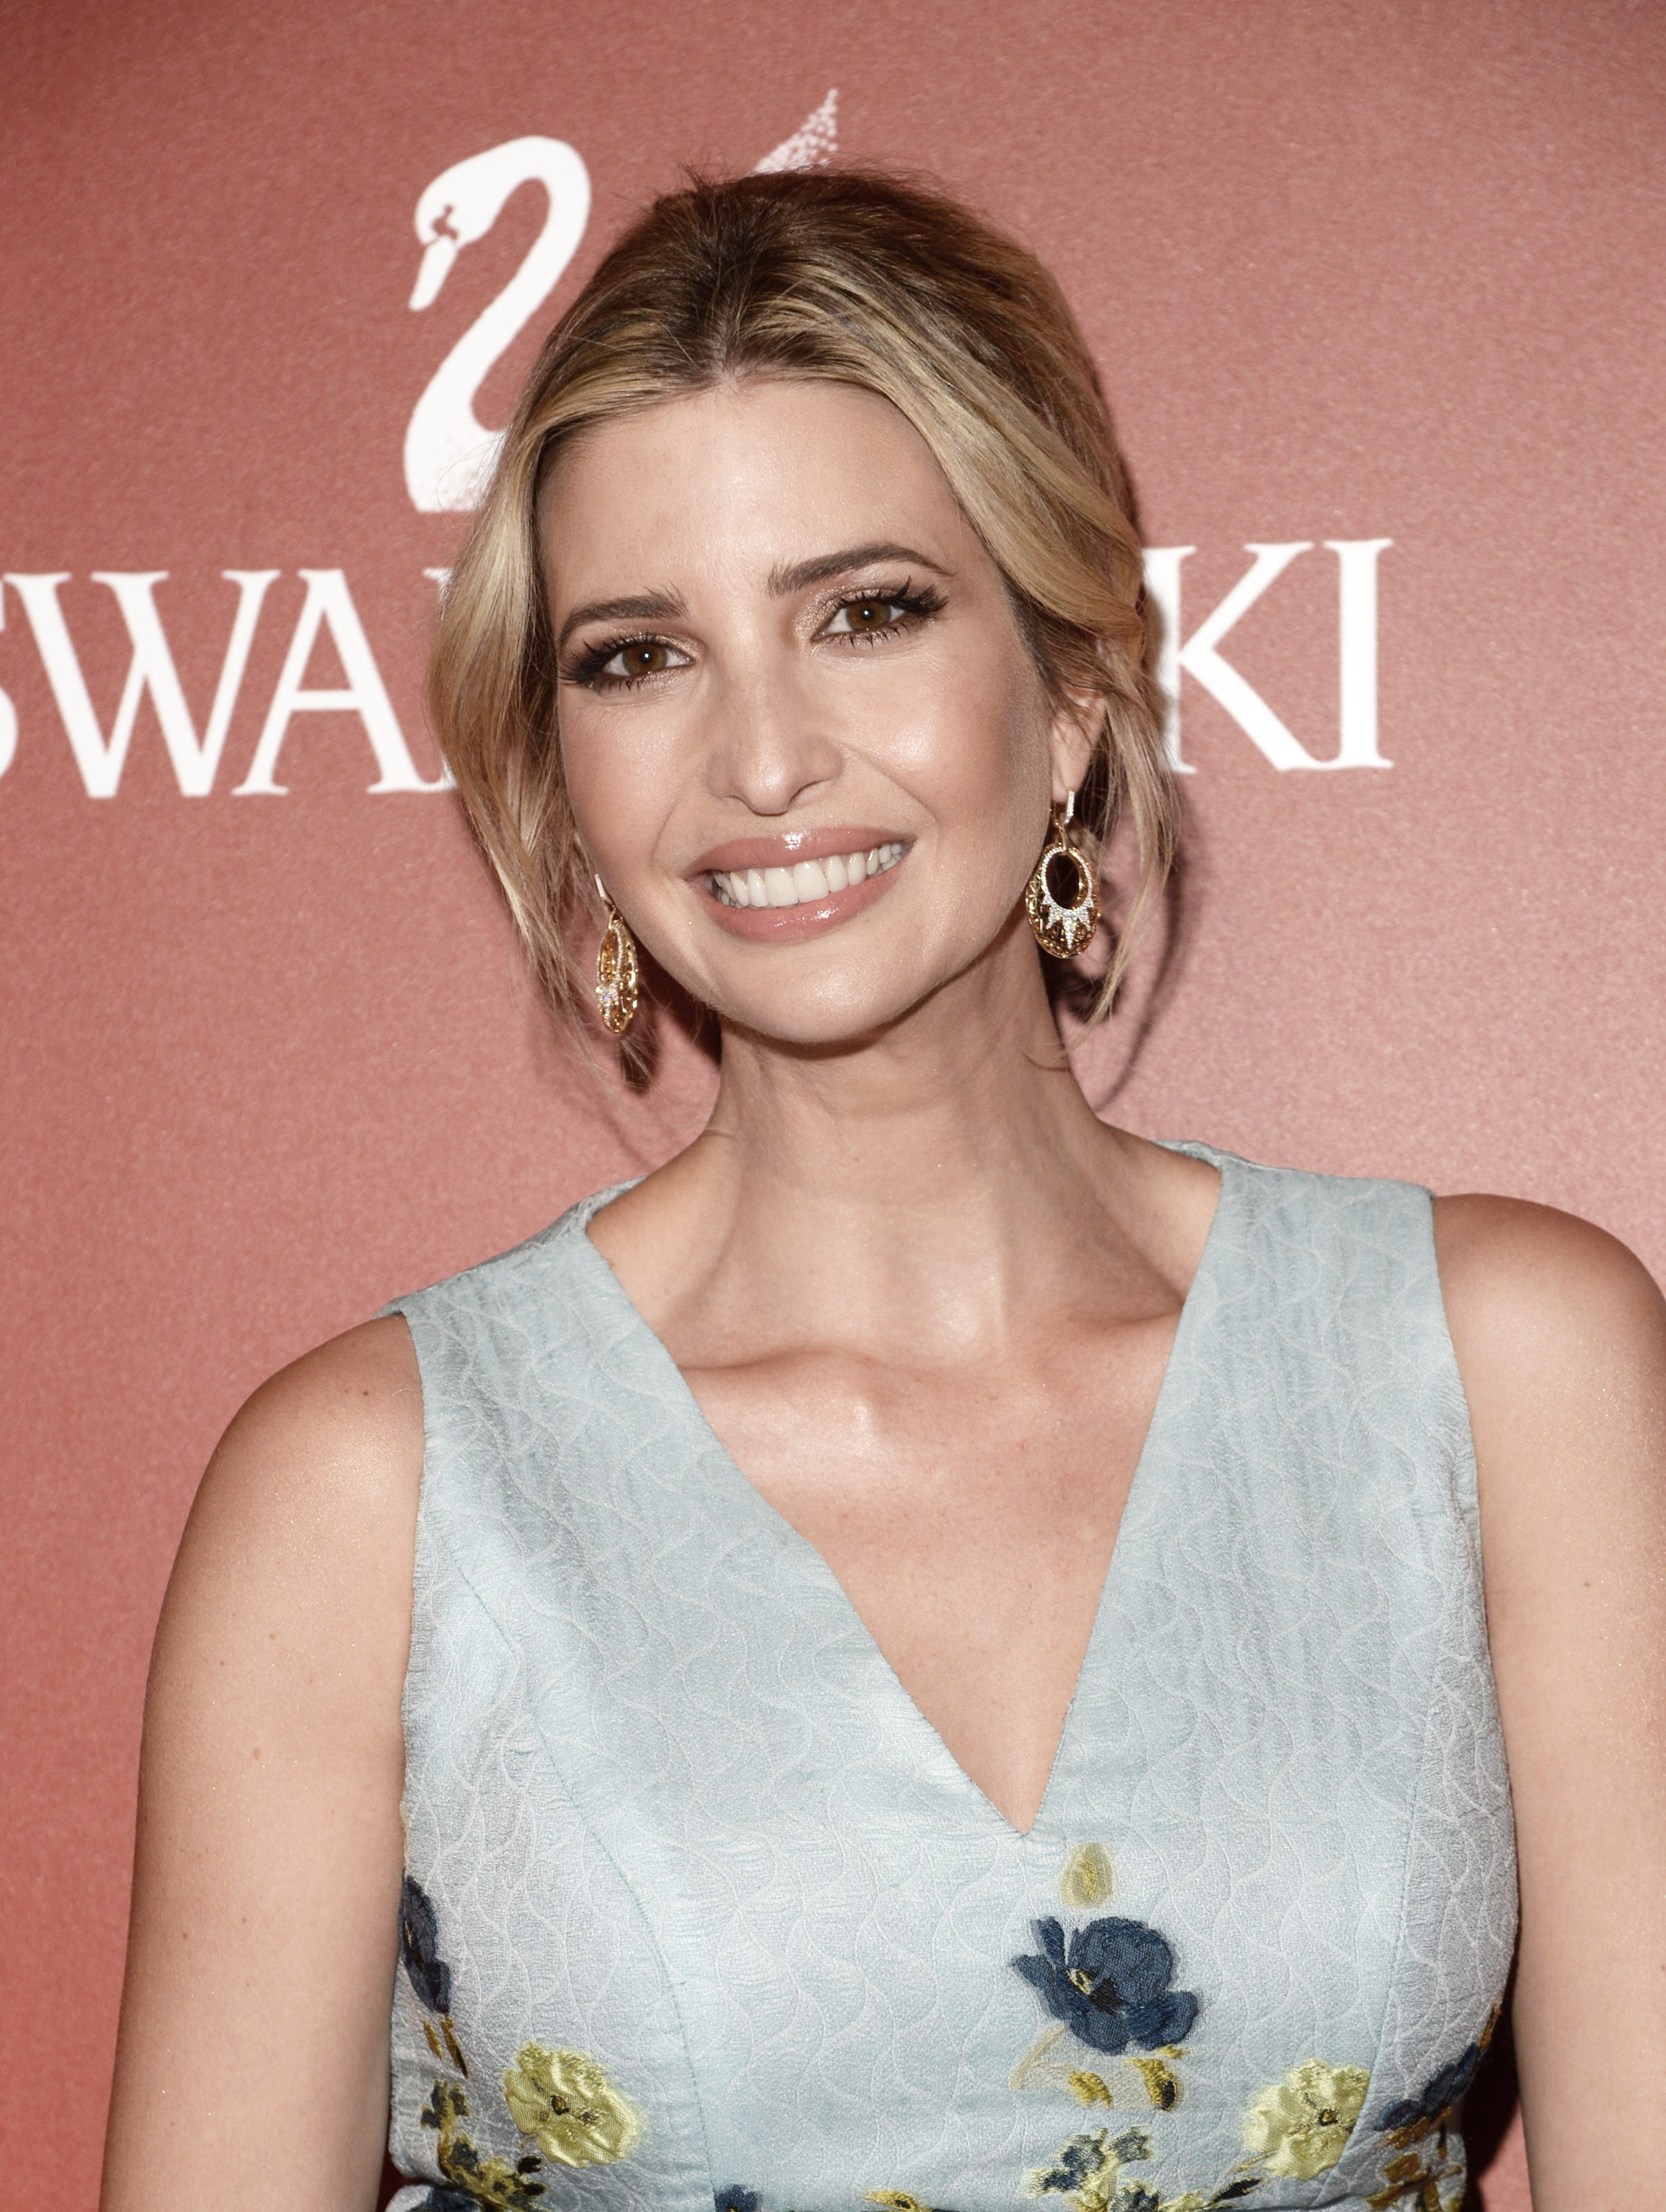 21f76fdd300 Pregnant Ivanka Trump Flaunts Her Adorable Baby Bump in a Bathing Suit — See  the Pic!